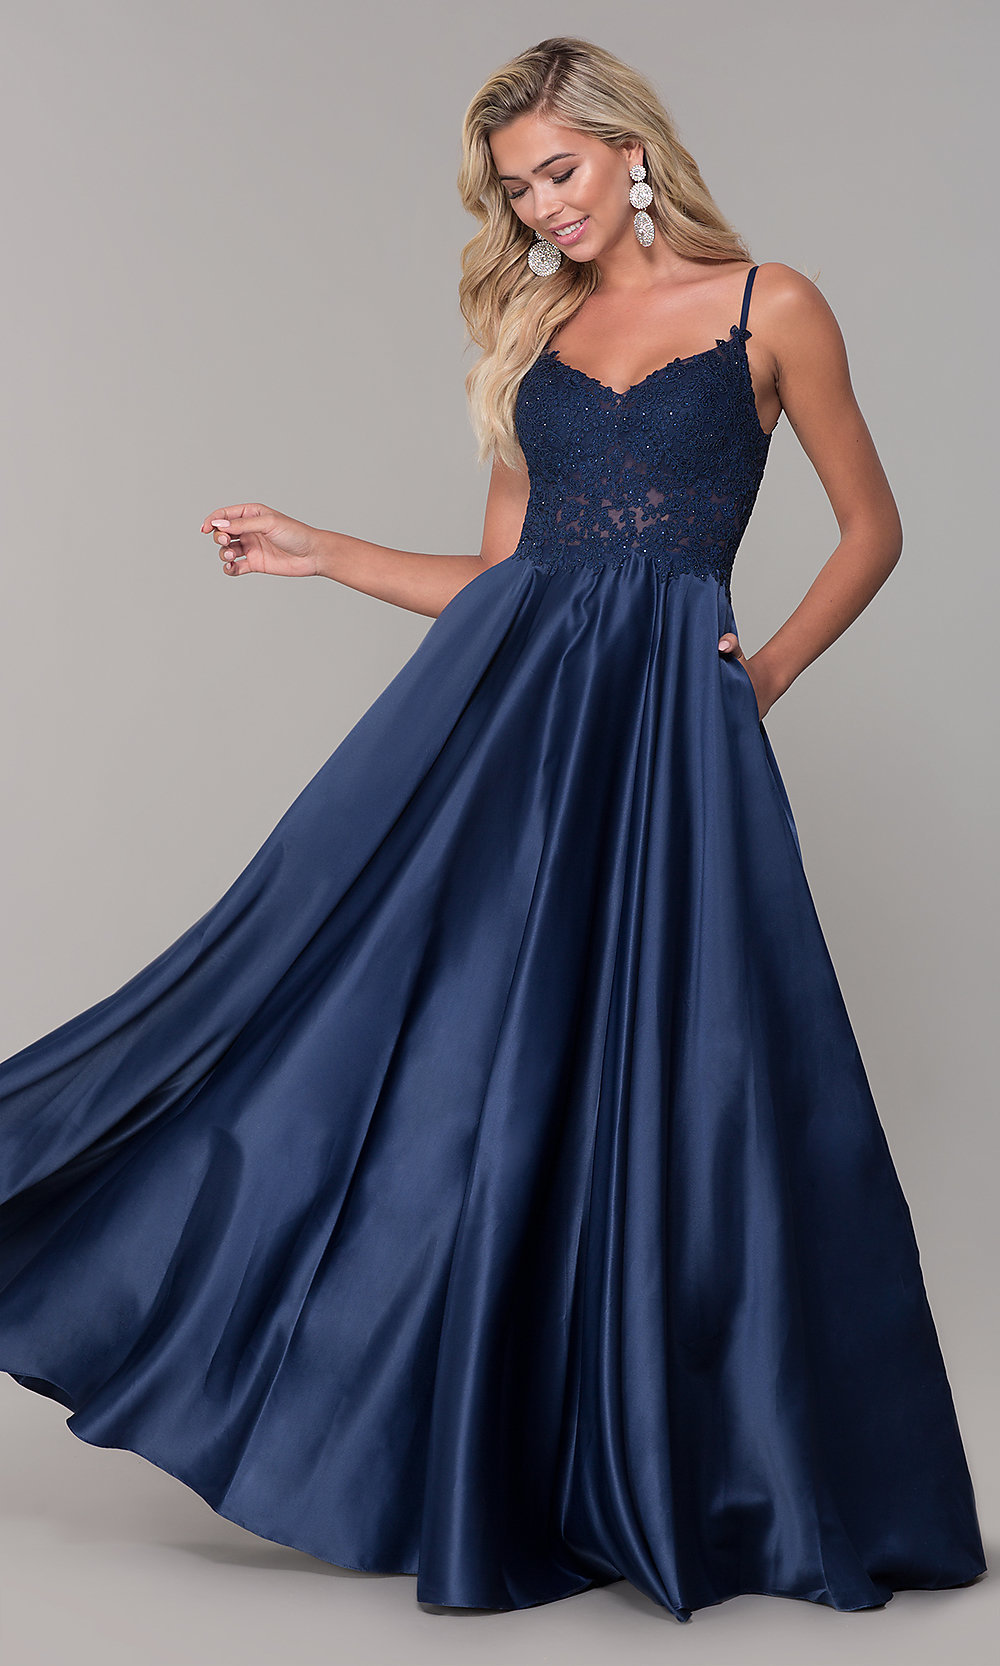 513ddef23ae82 Satin Prom Dress with Embroidered Bodice - PromGirl